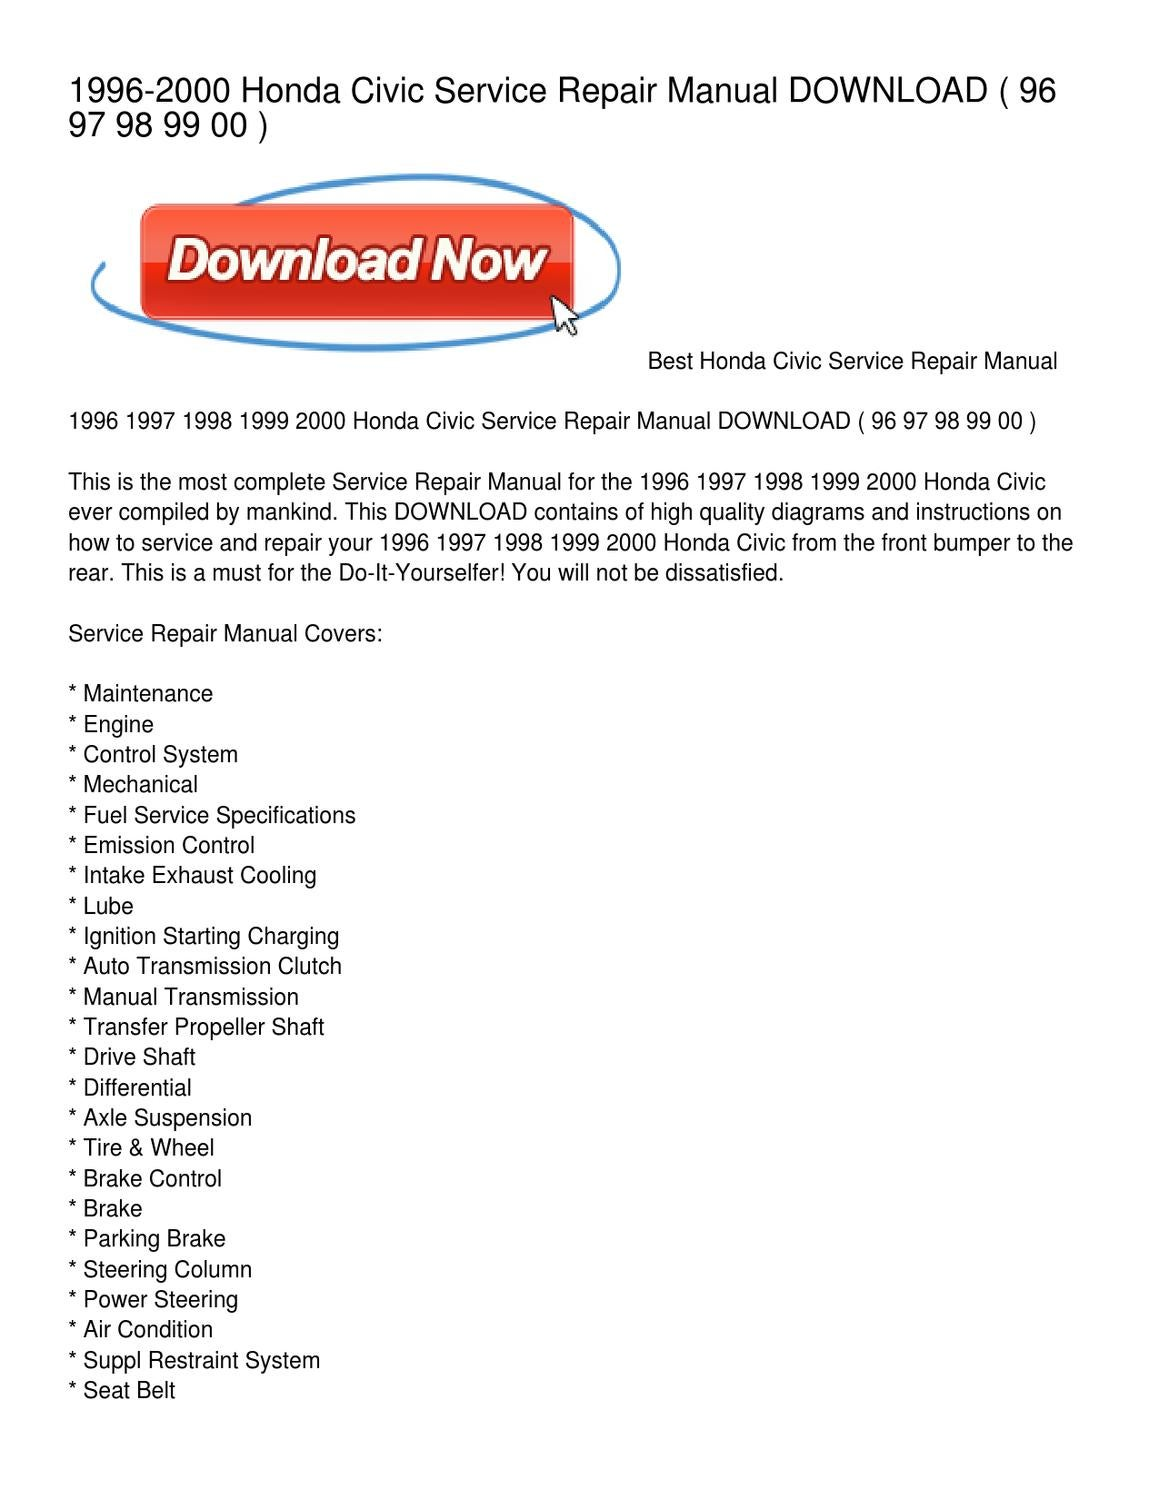 1996-2000 Honda Civic Service Repair Manual DOWNLOAD by Marquetta Palmer -  issuu